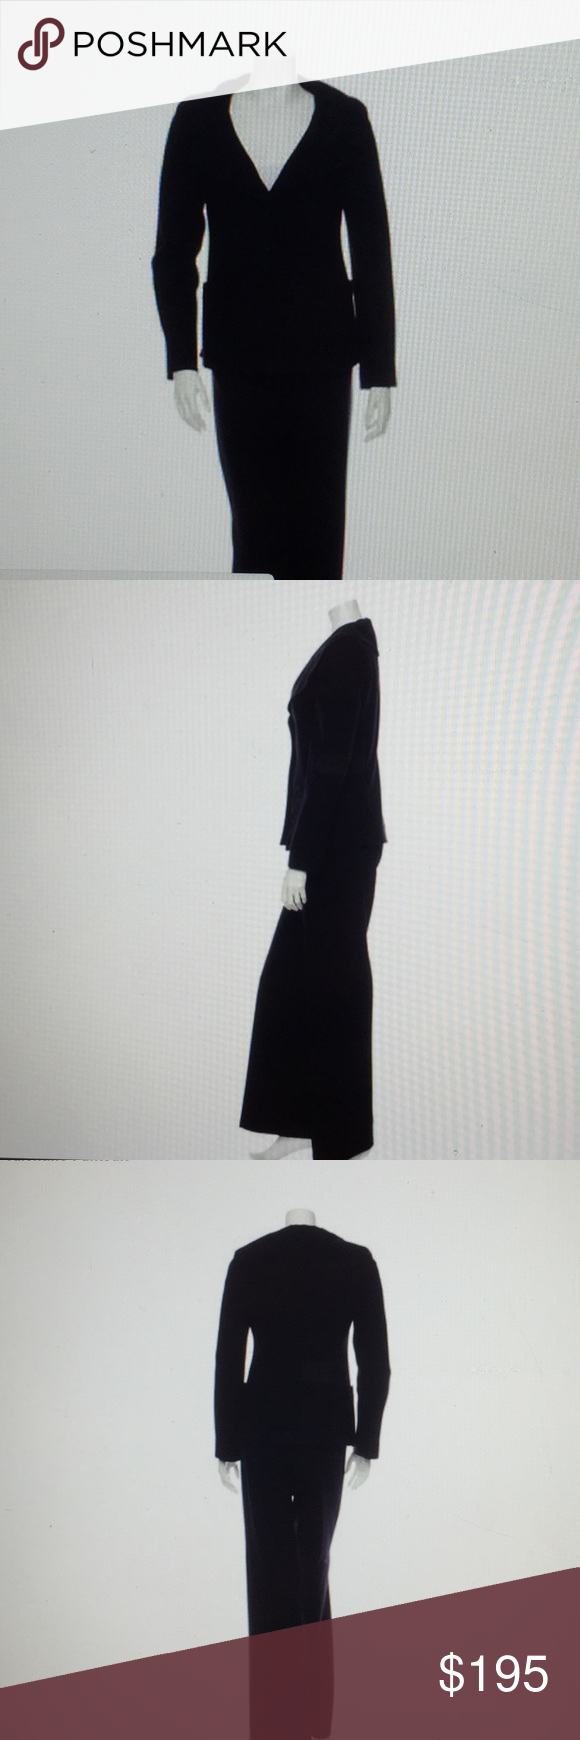 Valentino pantsuit Black pantsuit; jacket has two front pockets and front button closure; wide leg pants has side concealed zip closure Valentino Other